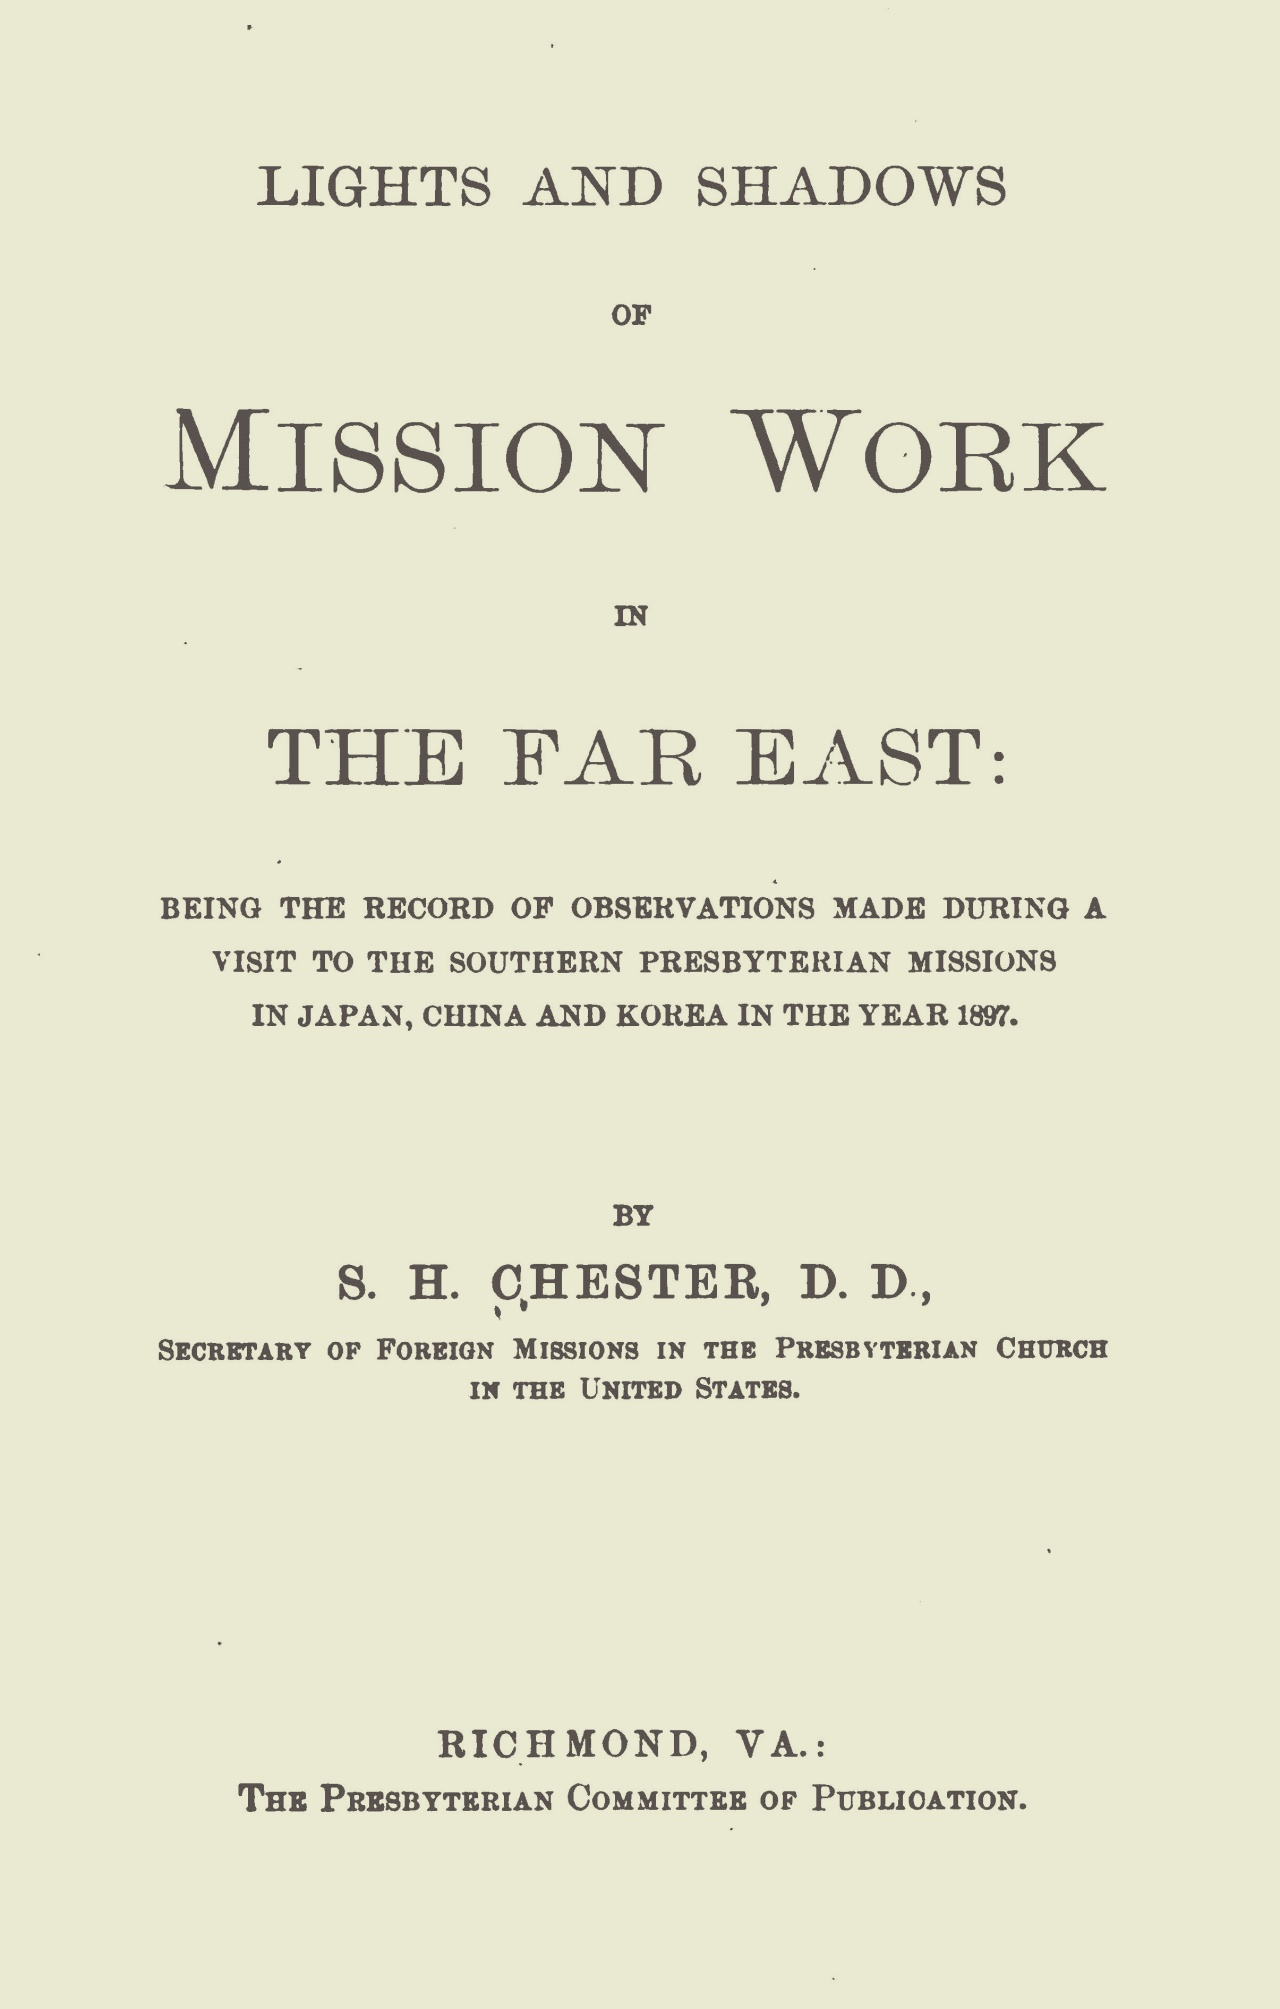 Chester, Samuel Hall, Lights and Shadows of Mission Work in the Far East Title Page.jpg